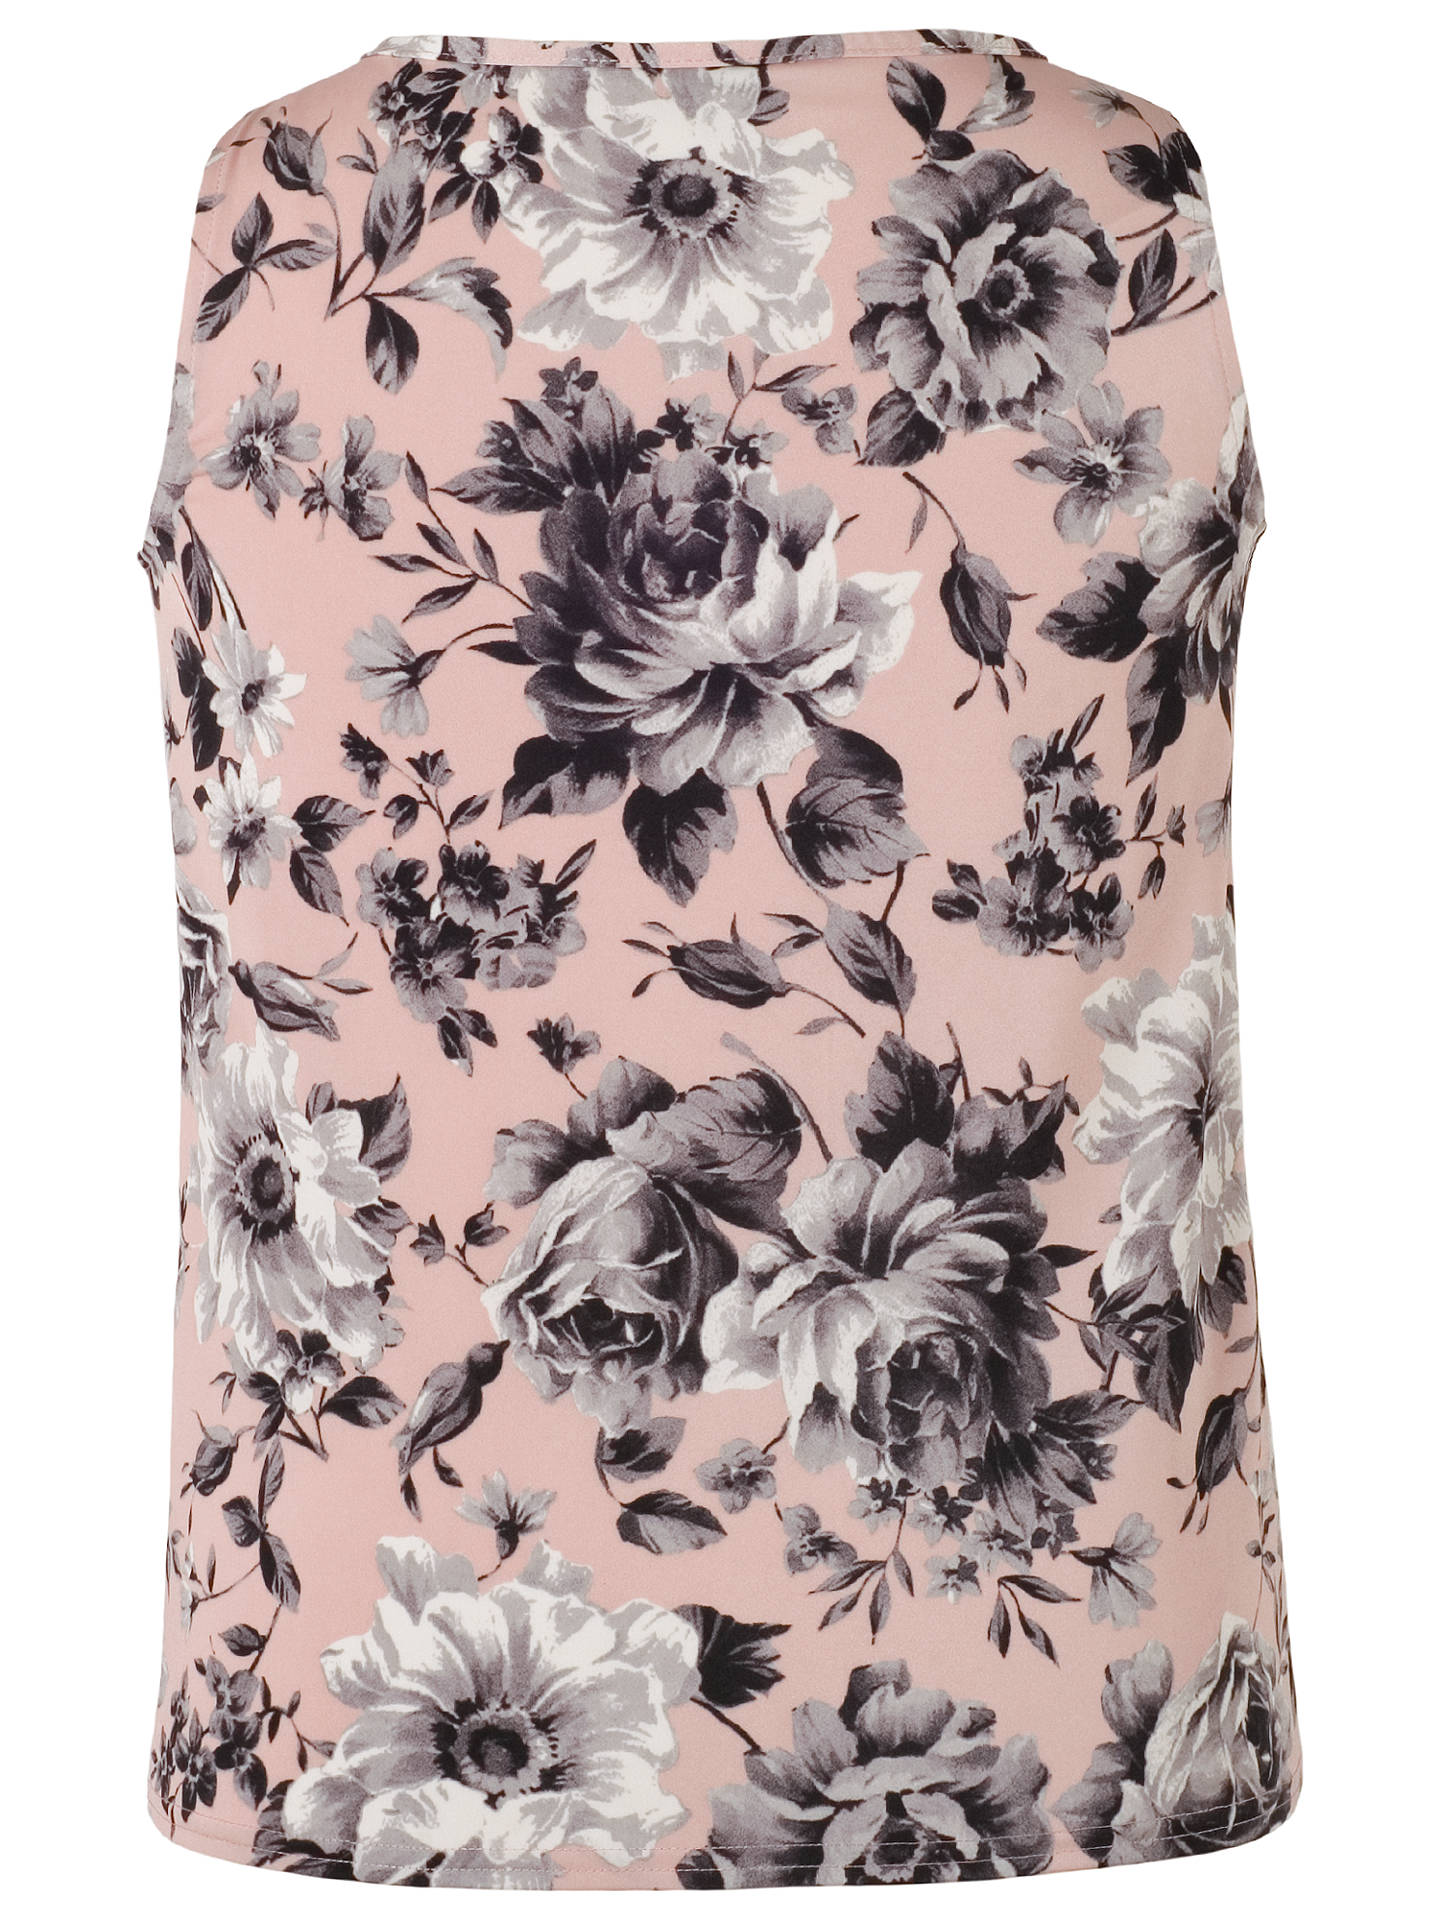 Buy Chesca Rose Print Tuck Top, Powder Pink, 10 Online at johnlewis.com